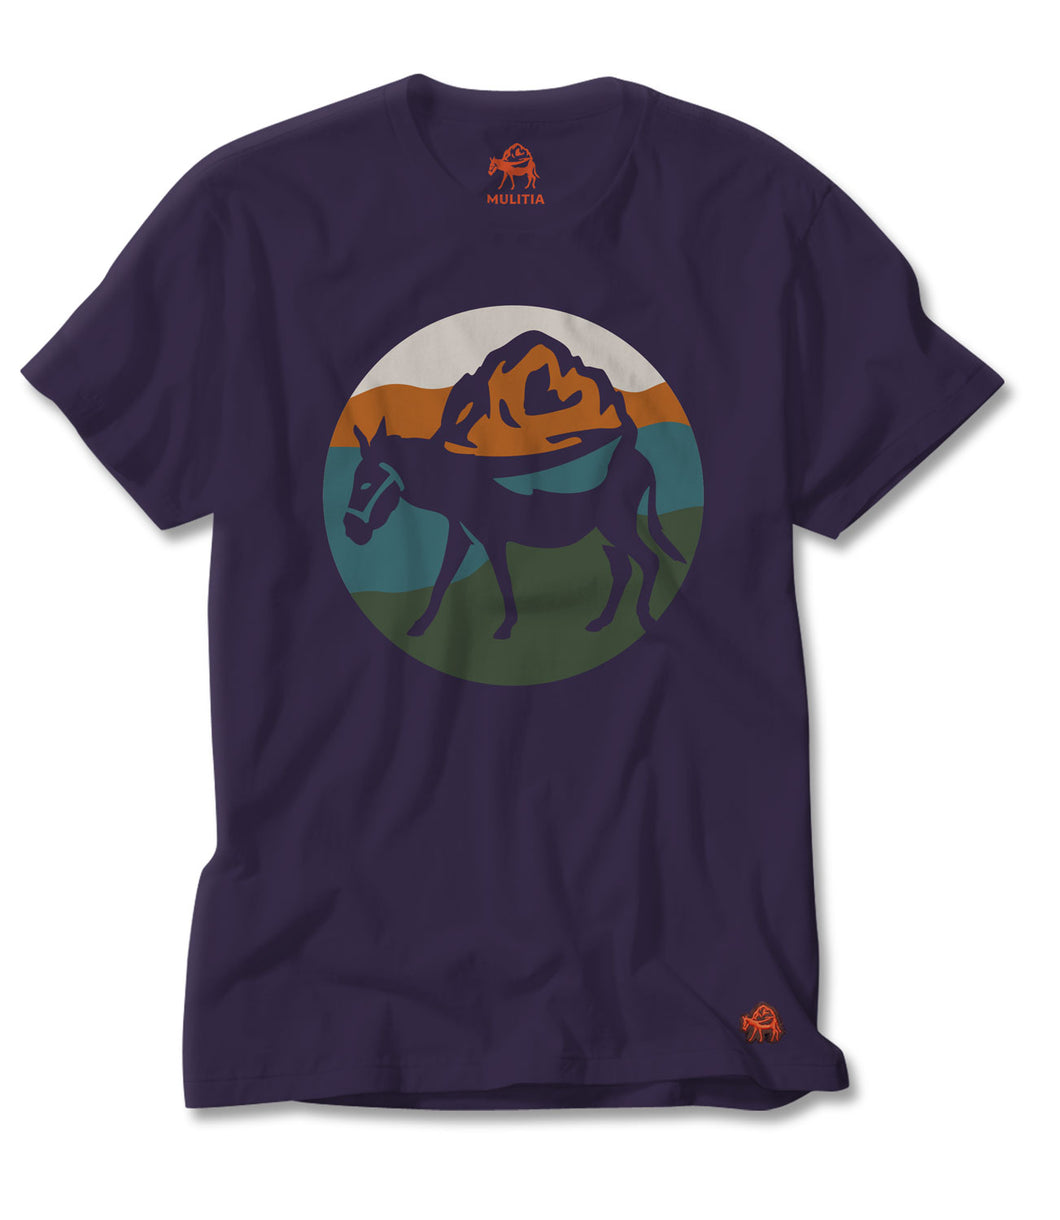 Mount Mulitia Tee in Navy